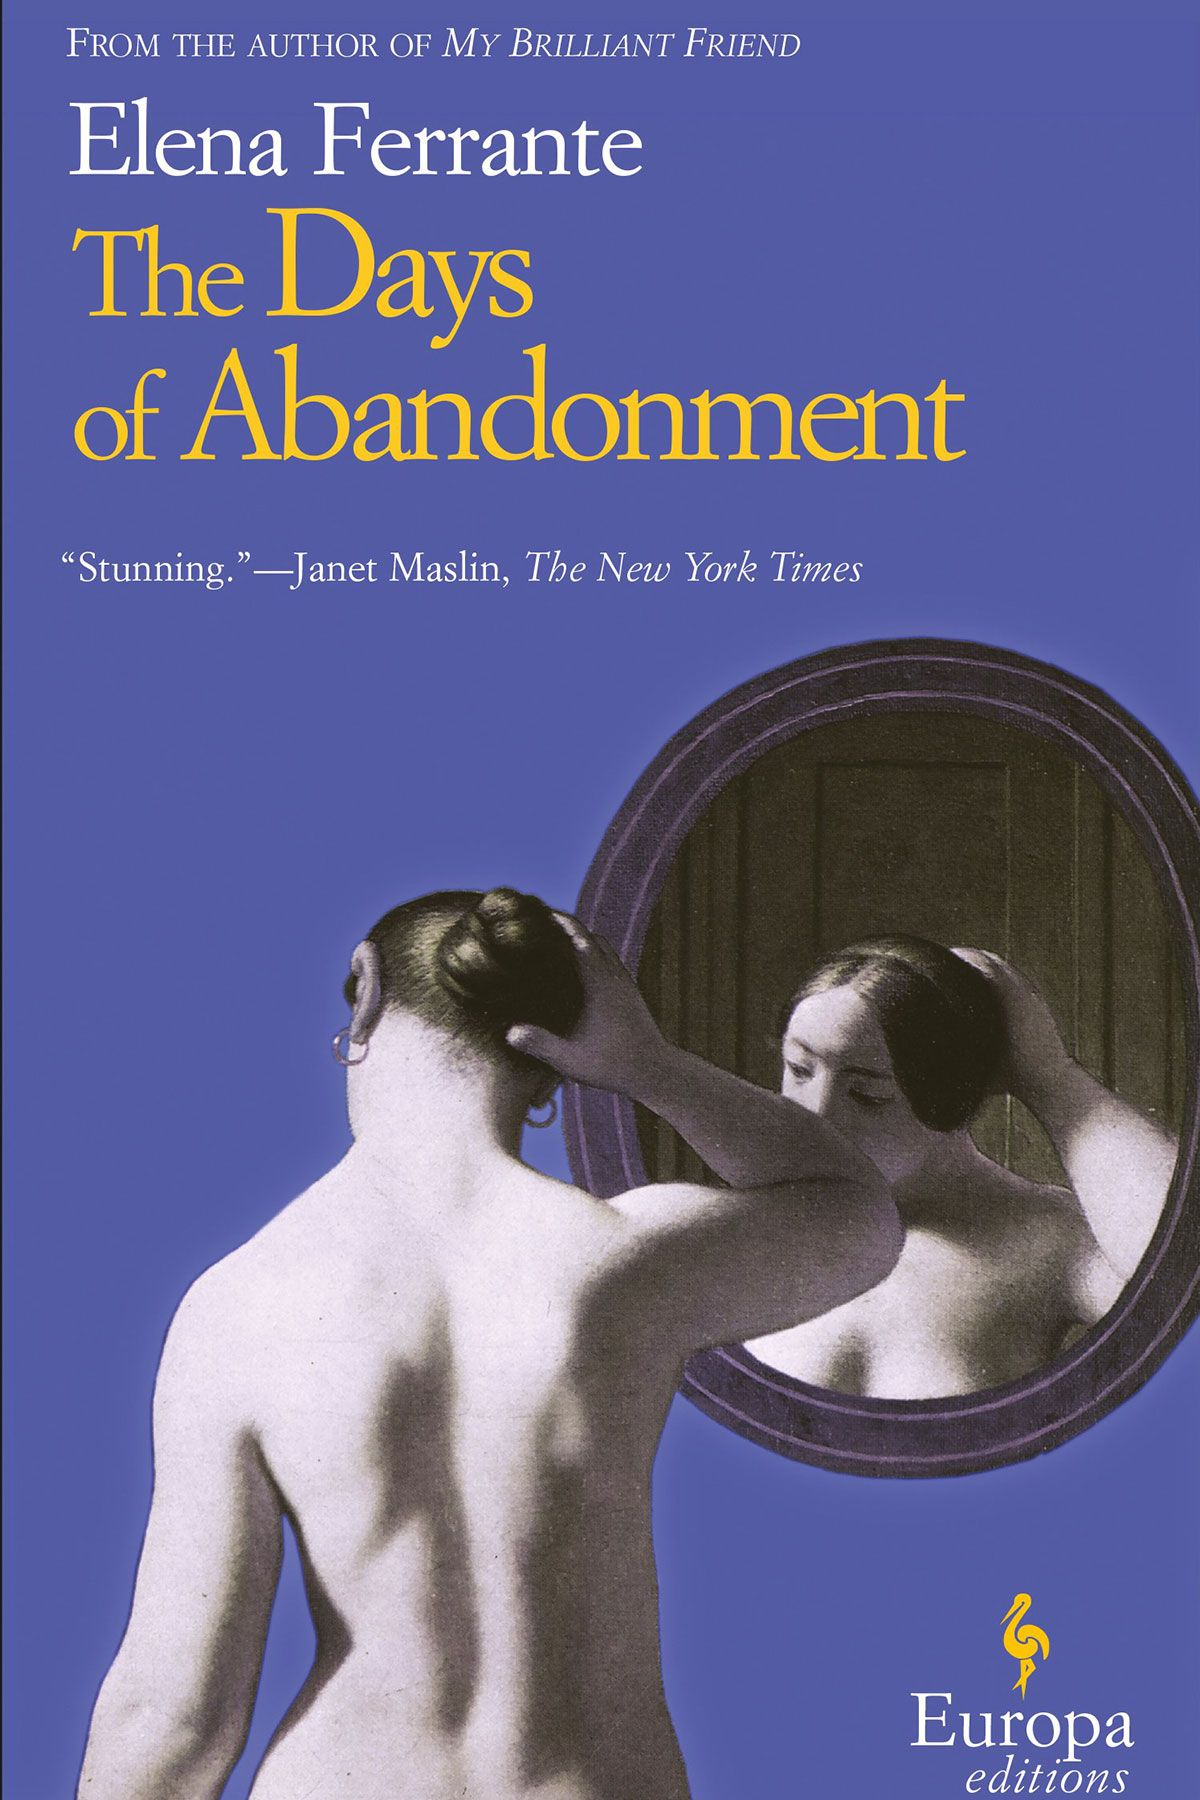 The Days of Abandonment, by Elena Ferrante